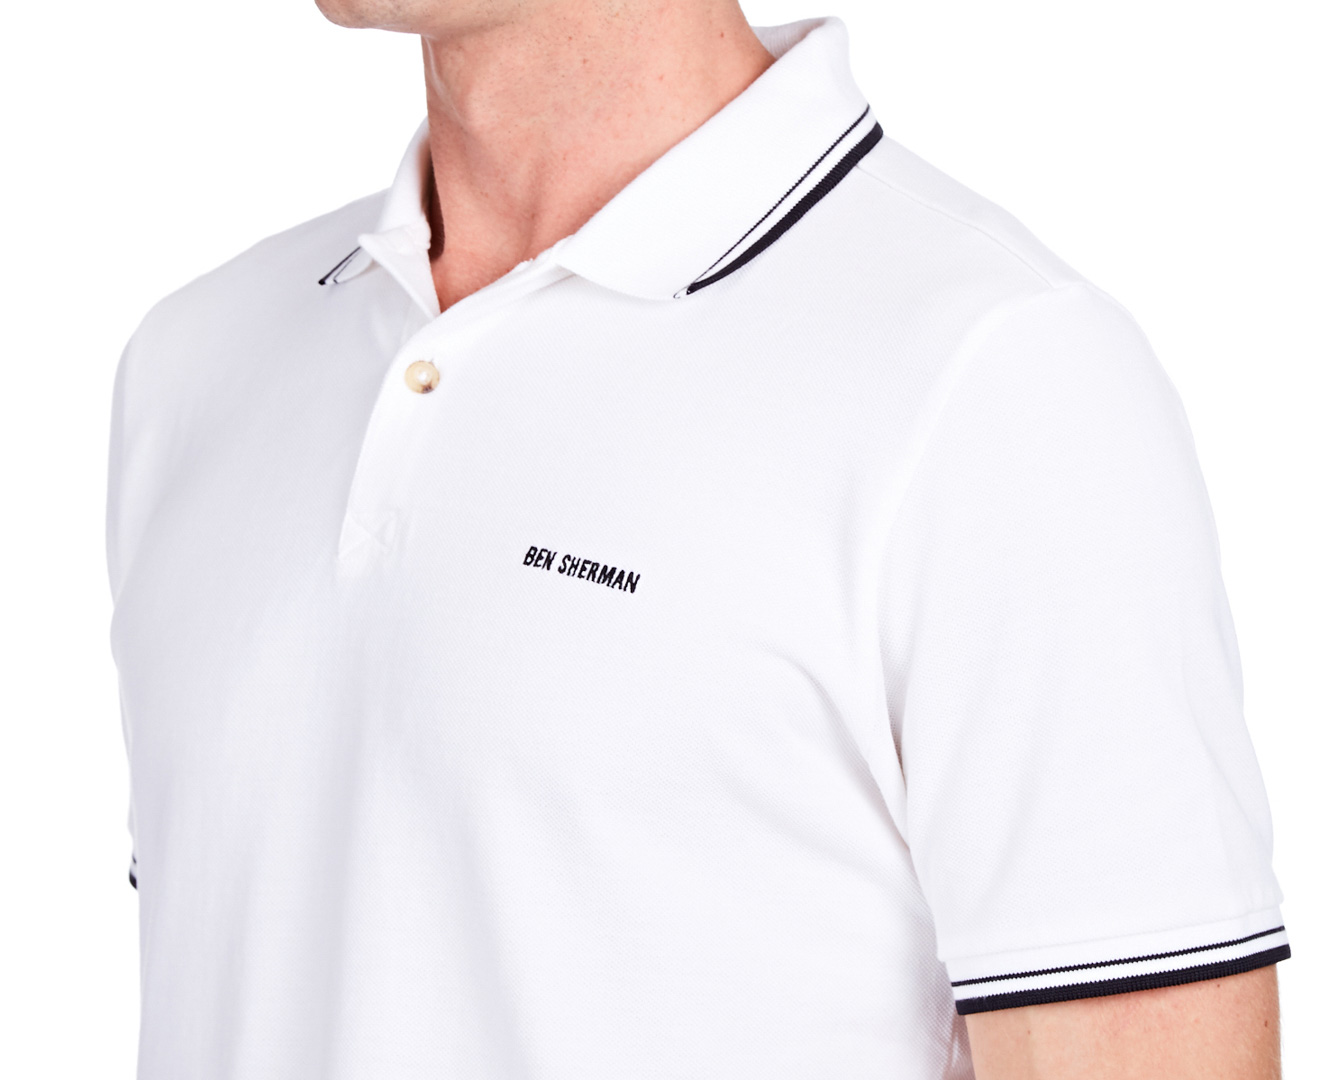 romford men Free shipping and returns on ben sherman romford polo at nordstromcom classic color tipping and chest embroidery accents a traditional tennis polo made of a soft piqué-knit tailored best for slender mid-heights.